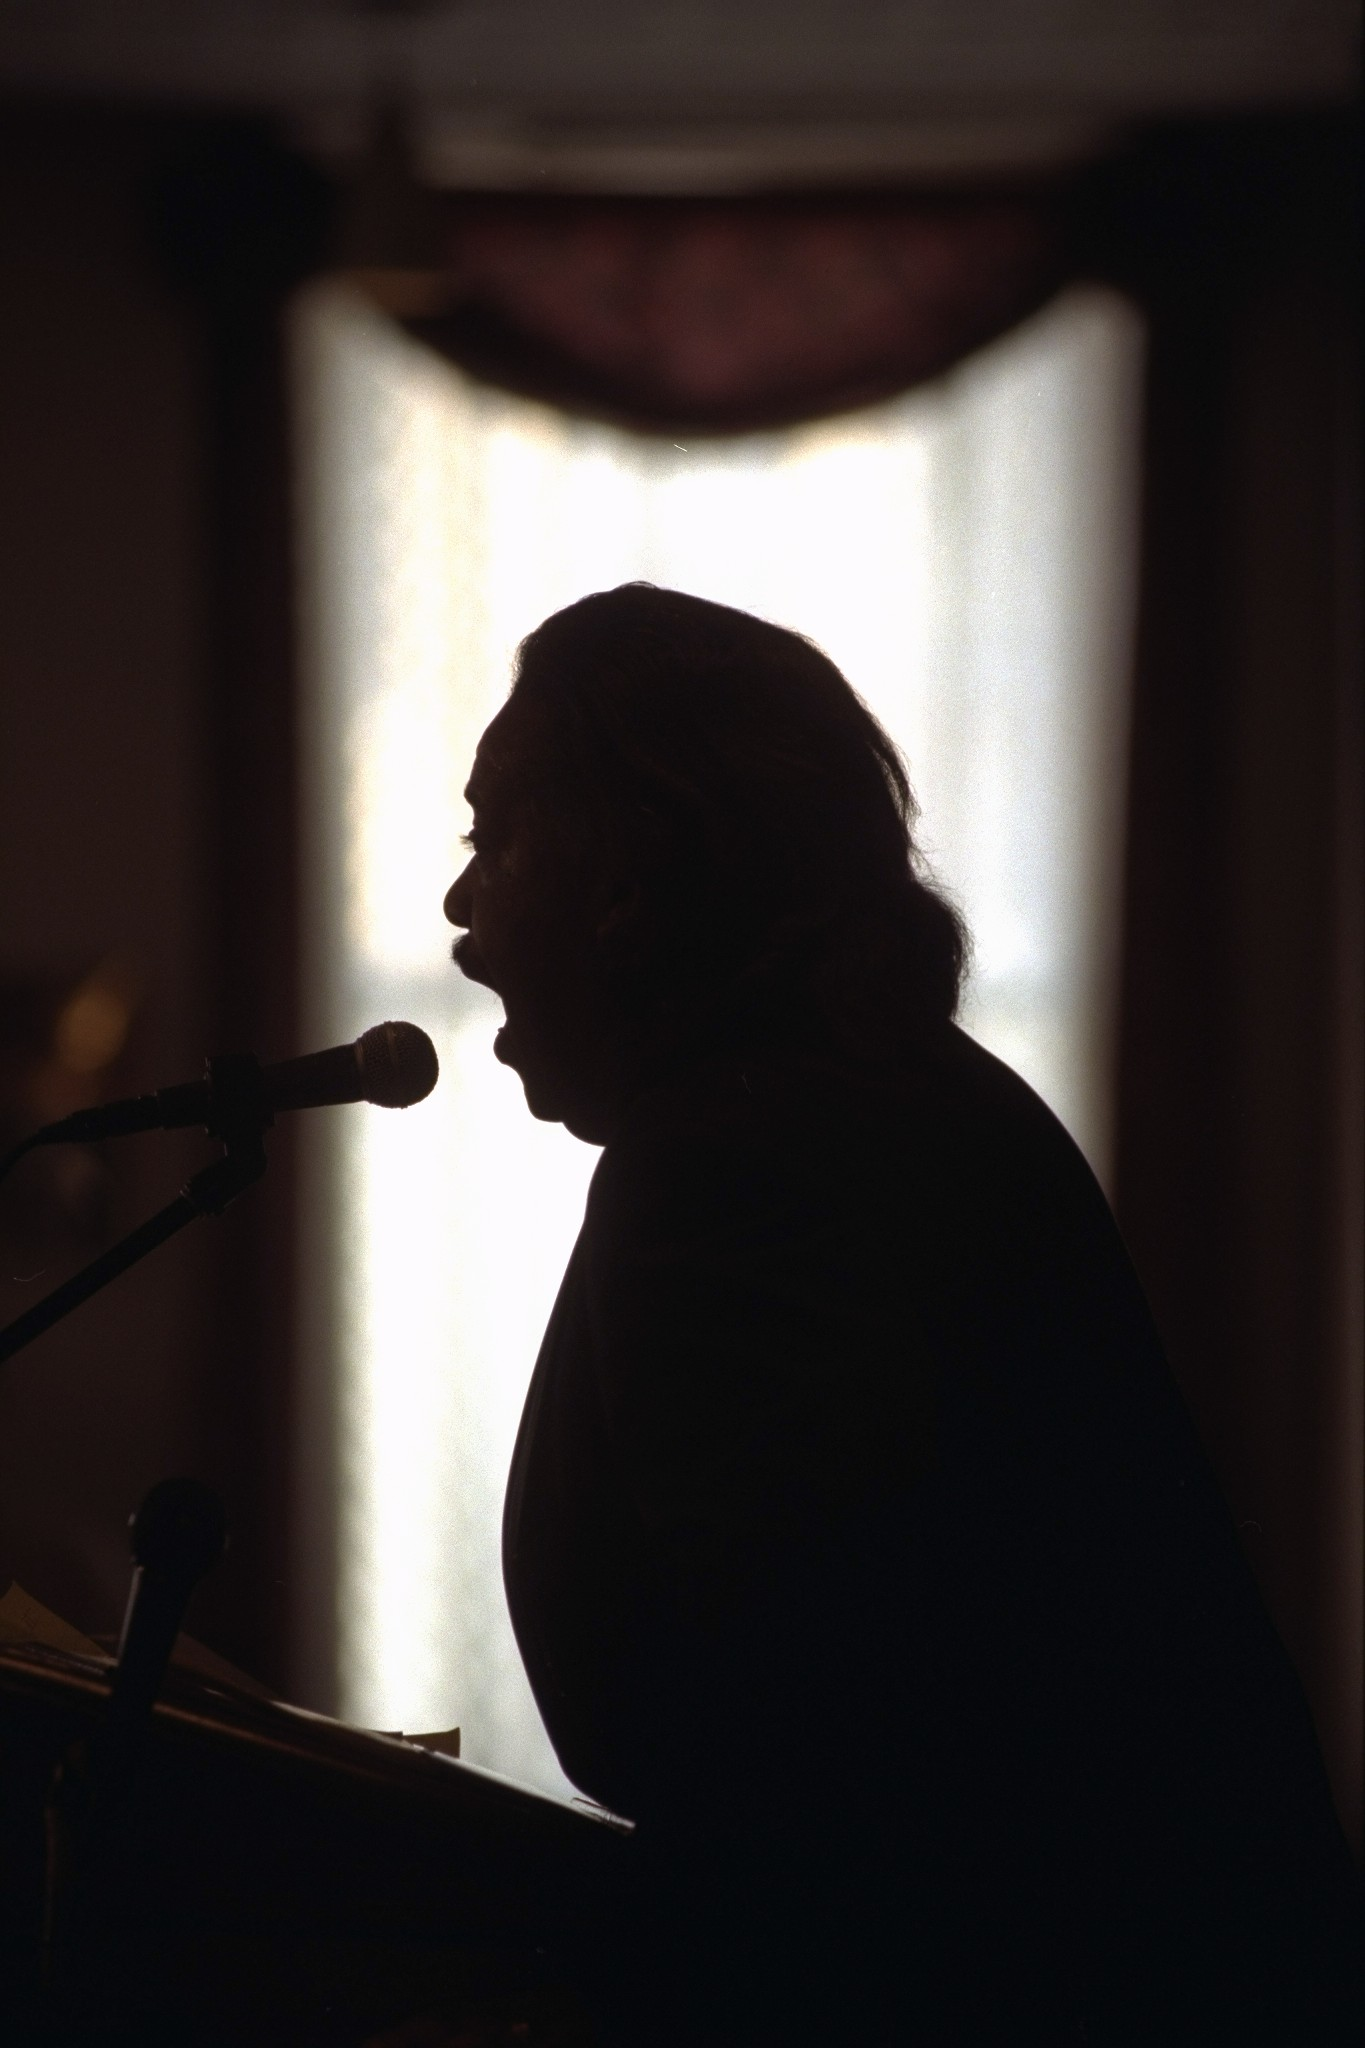 The Rev. Al Sharpton announces his candidacy for mayor in Harlem, New York City, Jan. 20, 1997.